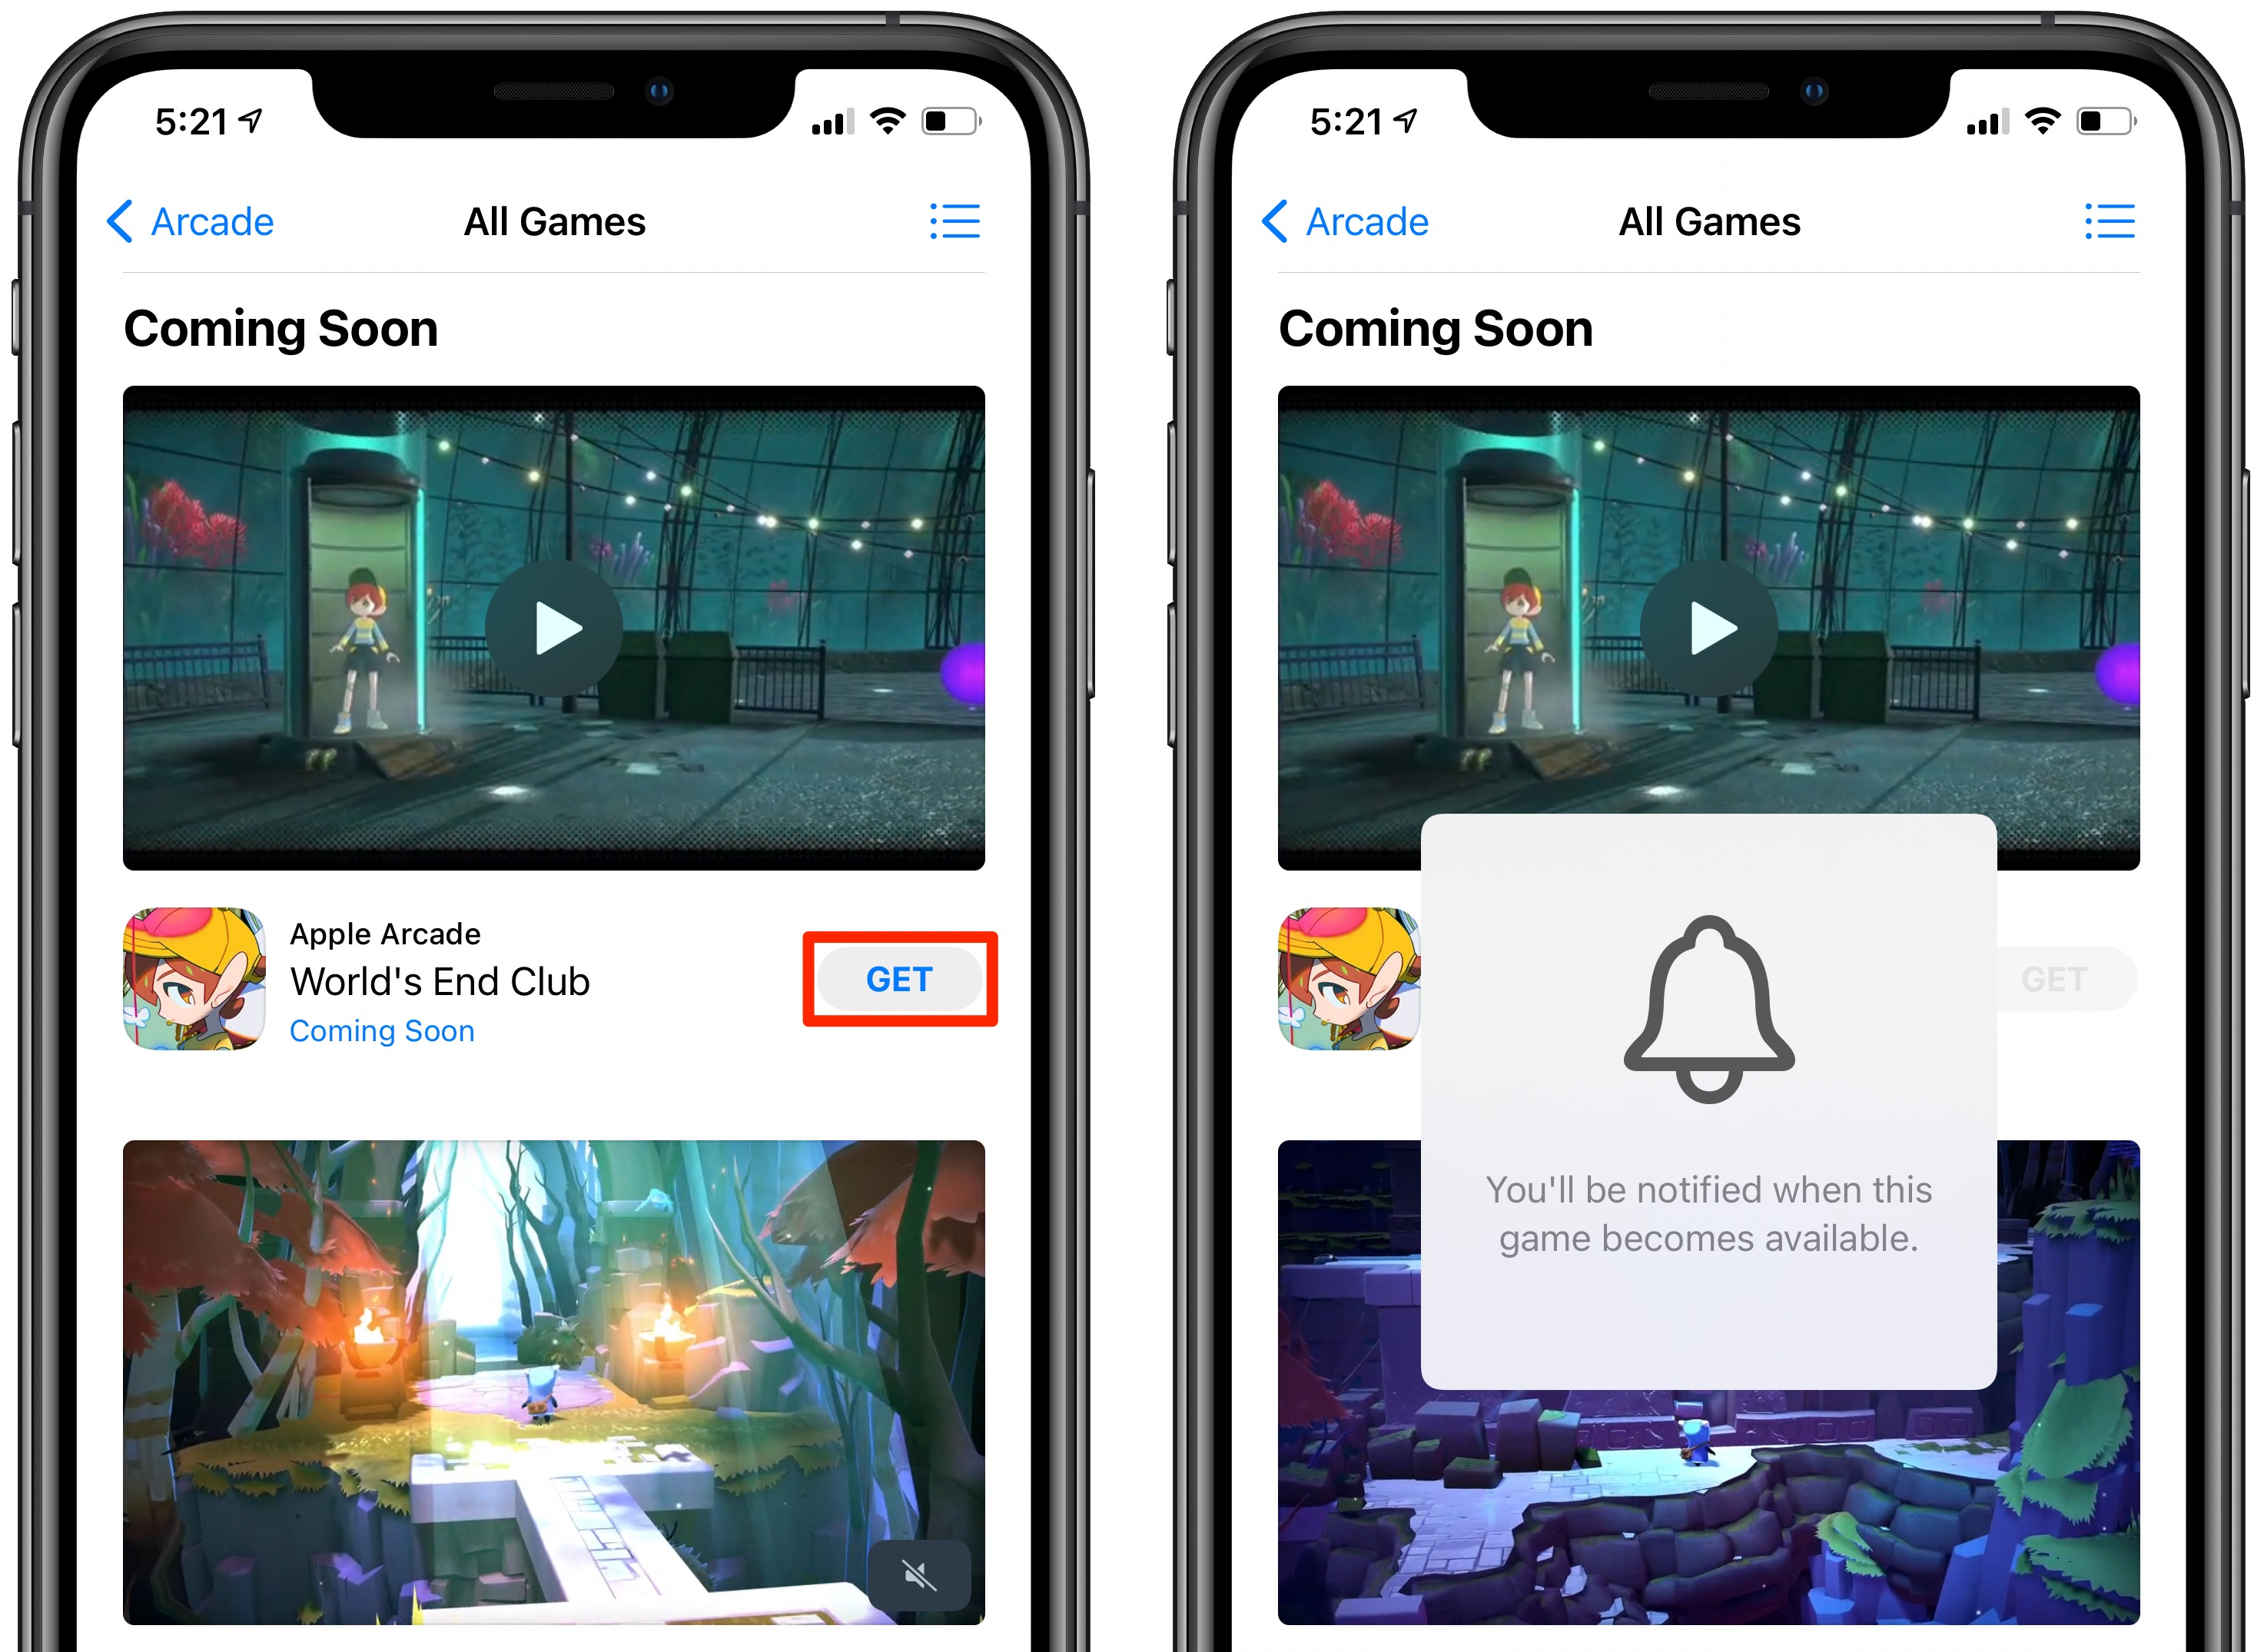 Upcoming Apple Arcade games - a message say gin the user will be notified when the game becomes available